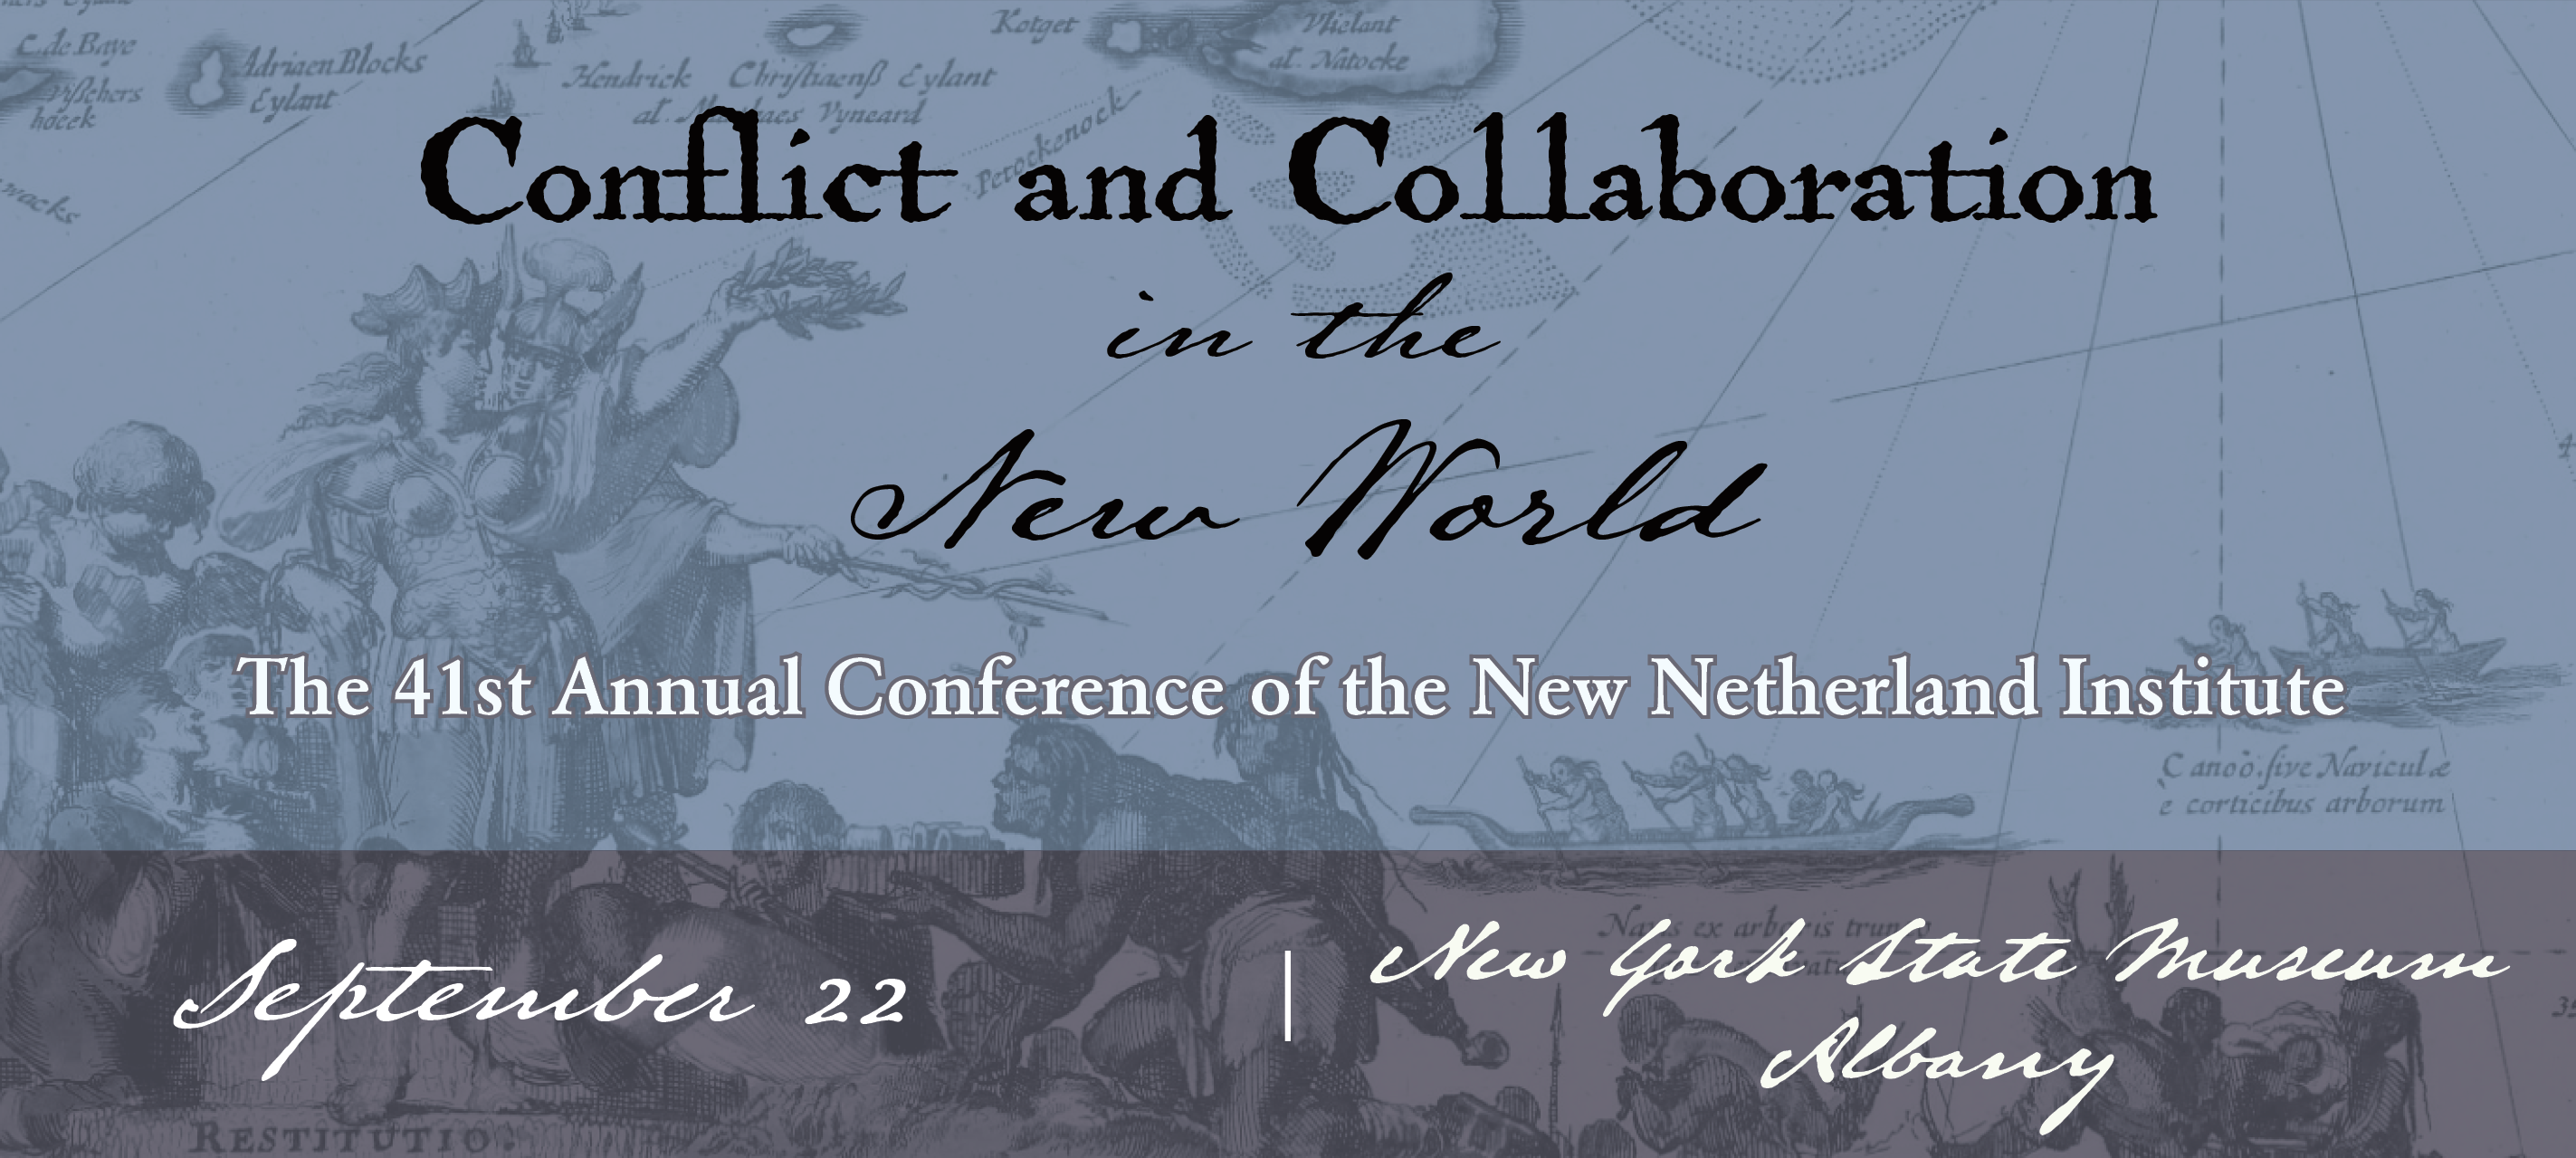 41st Annual Conference of the NNI